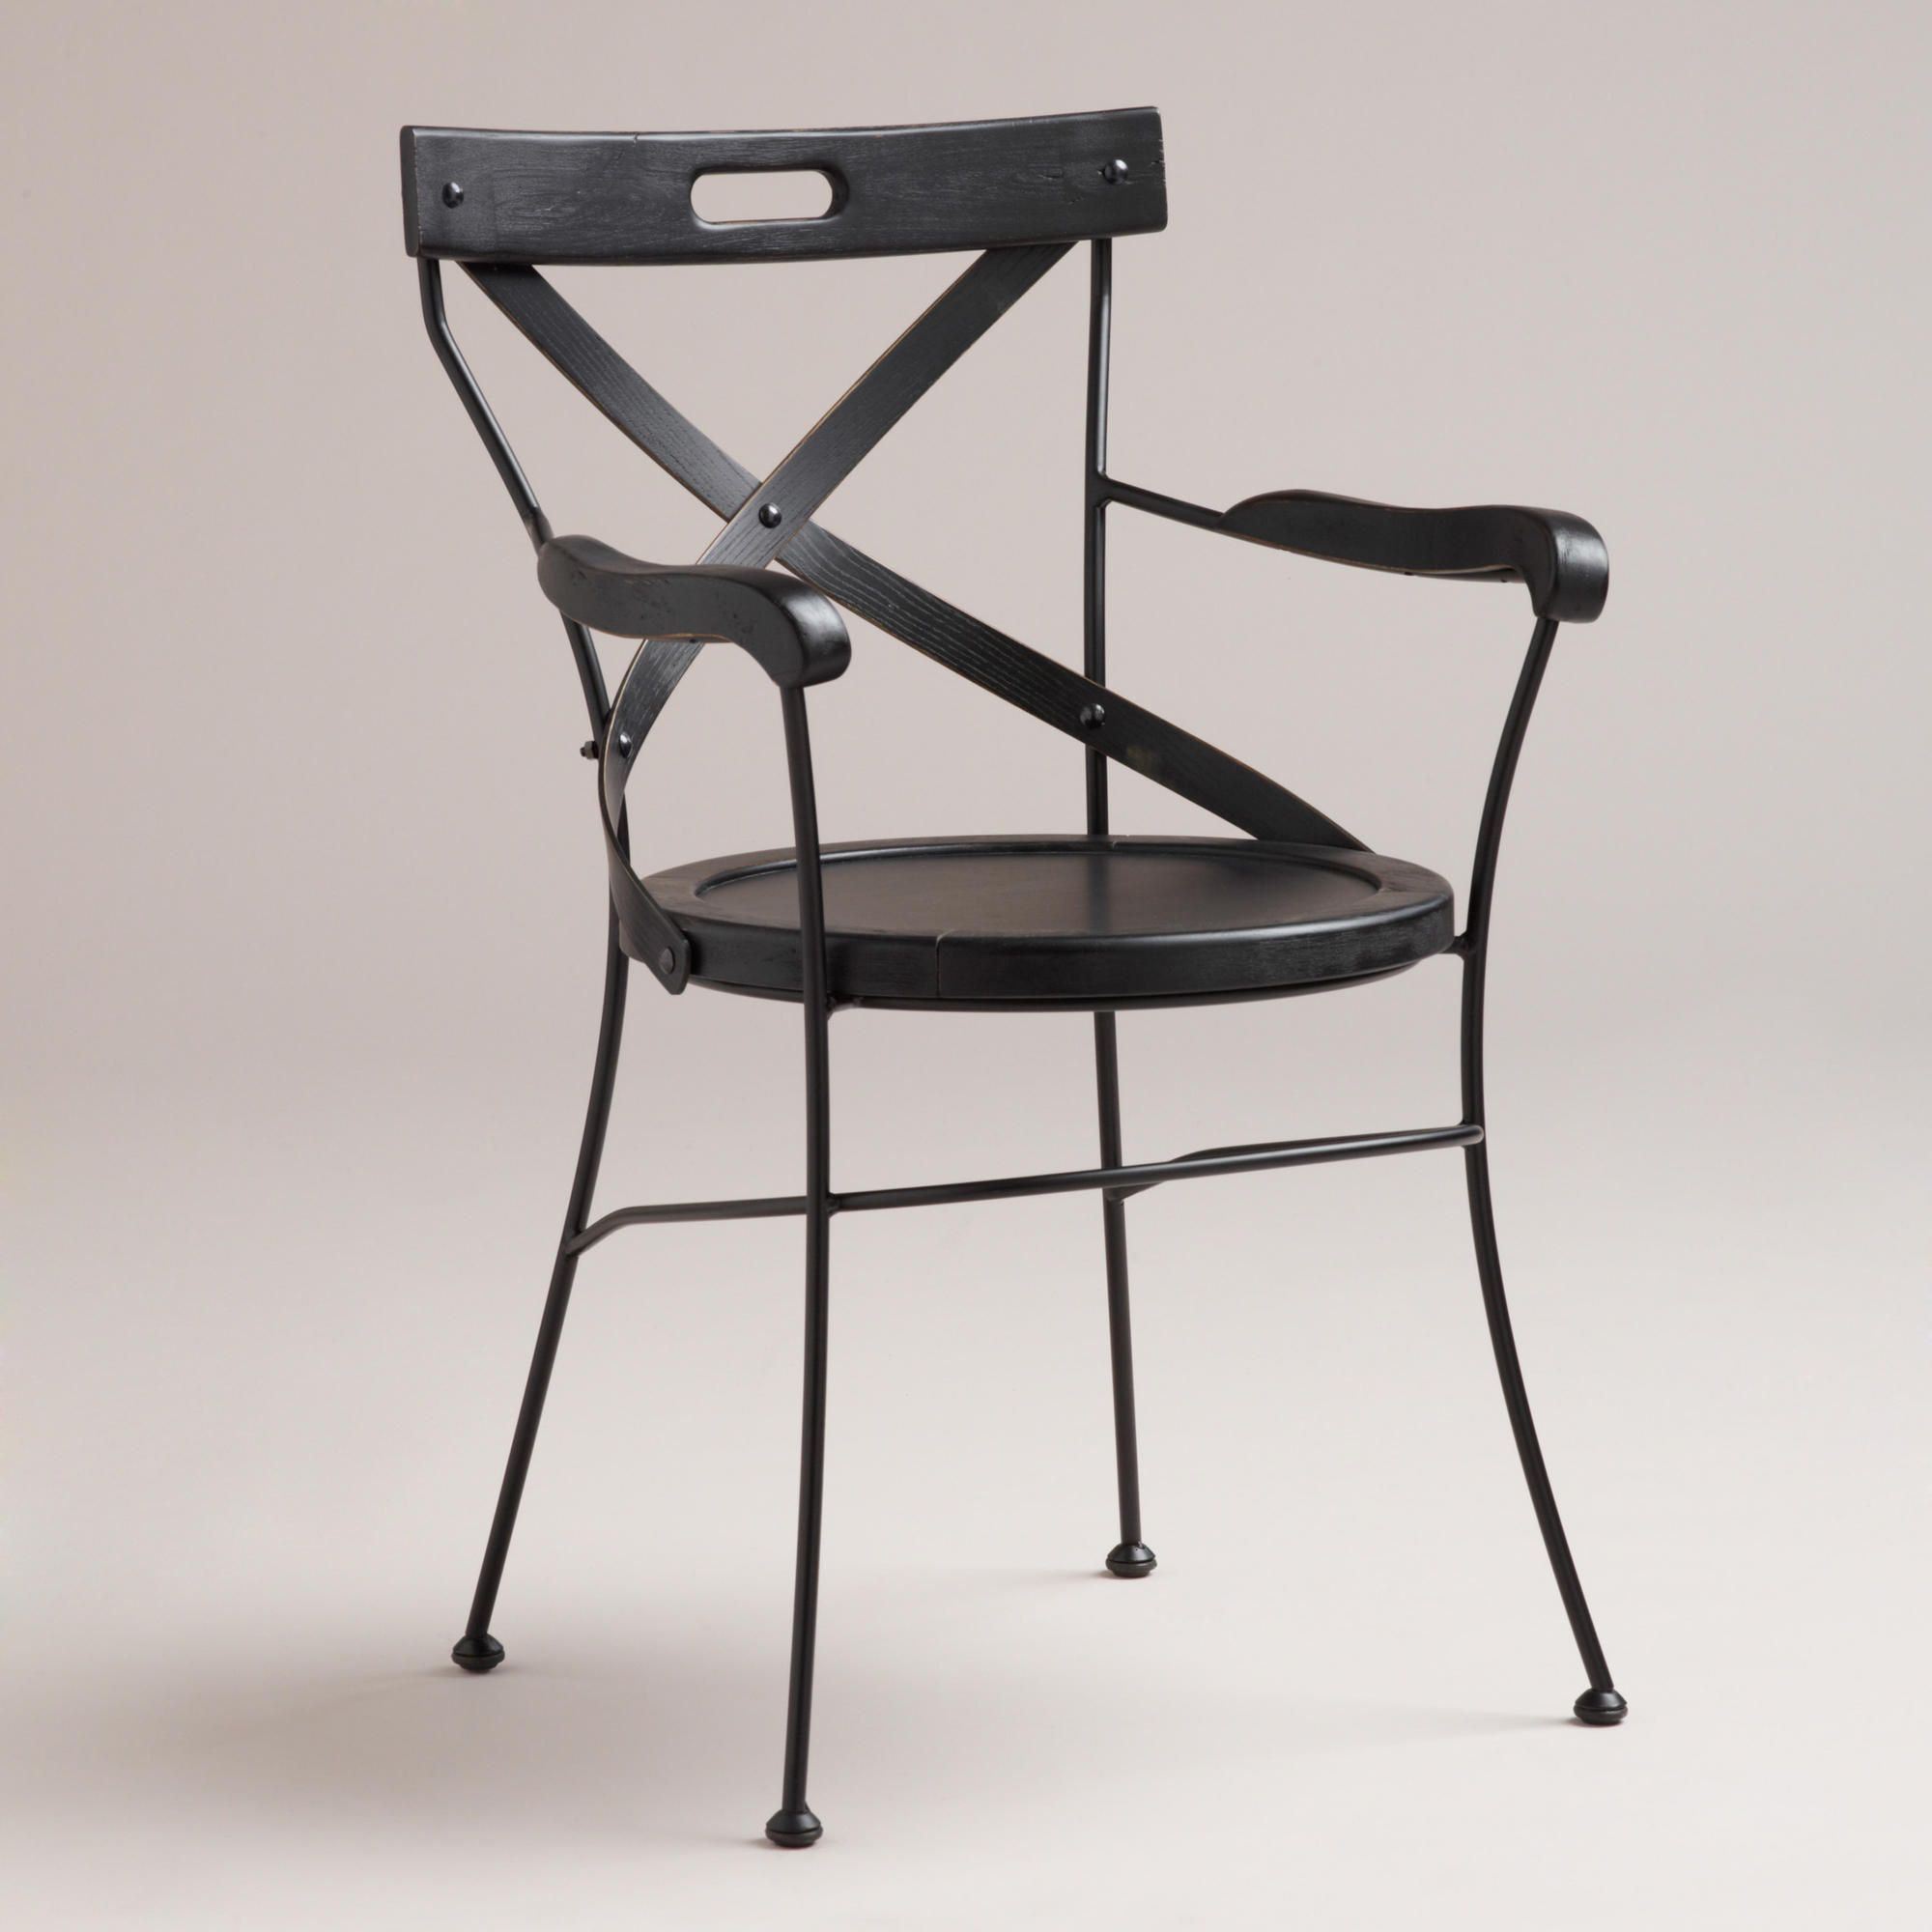 Found my new desk chair Black Campaign Chair